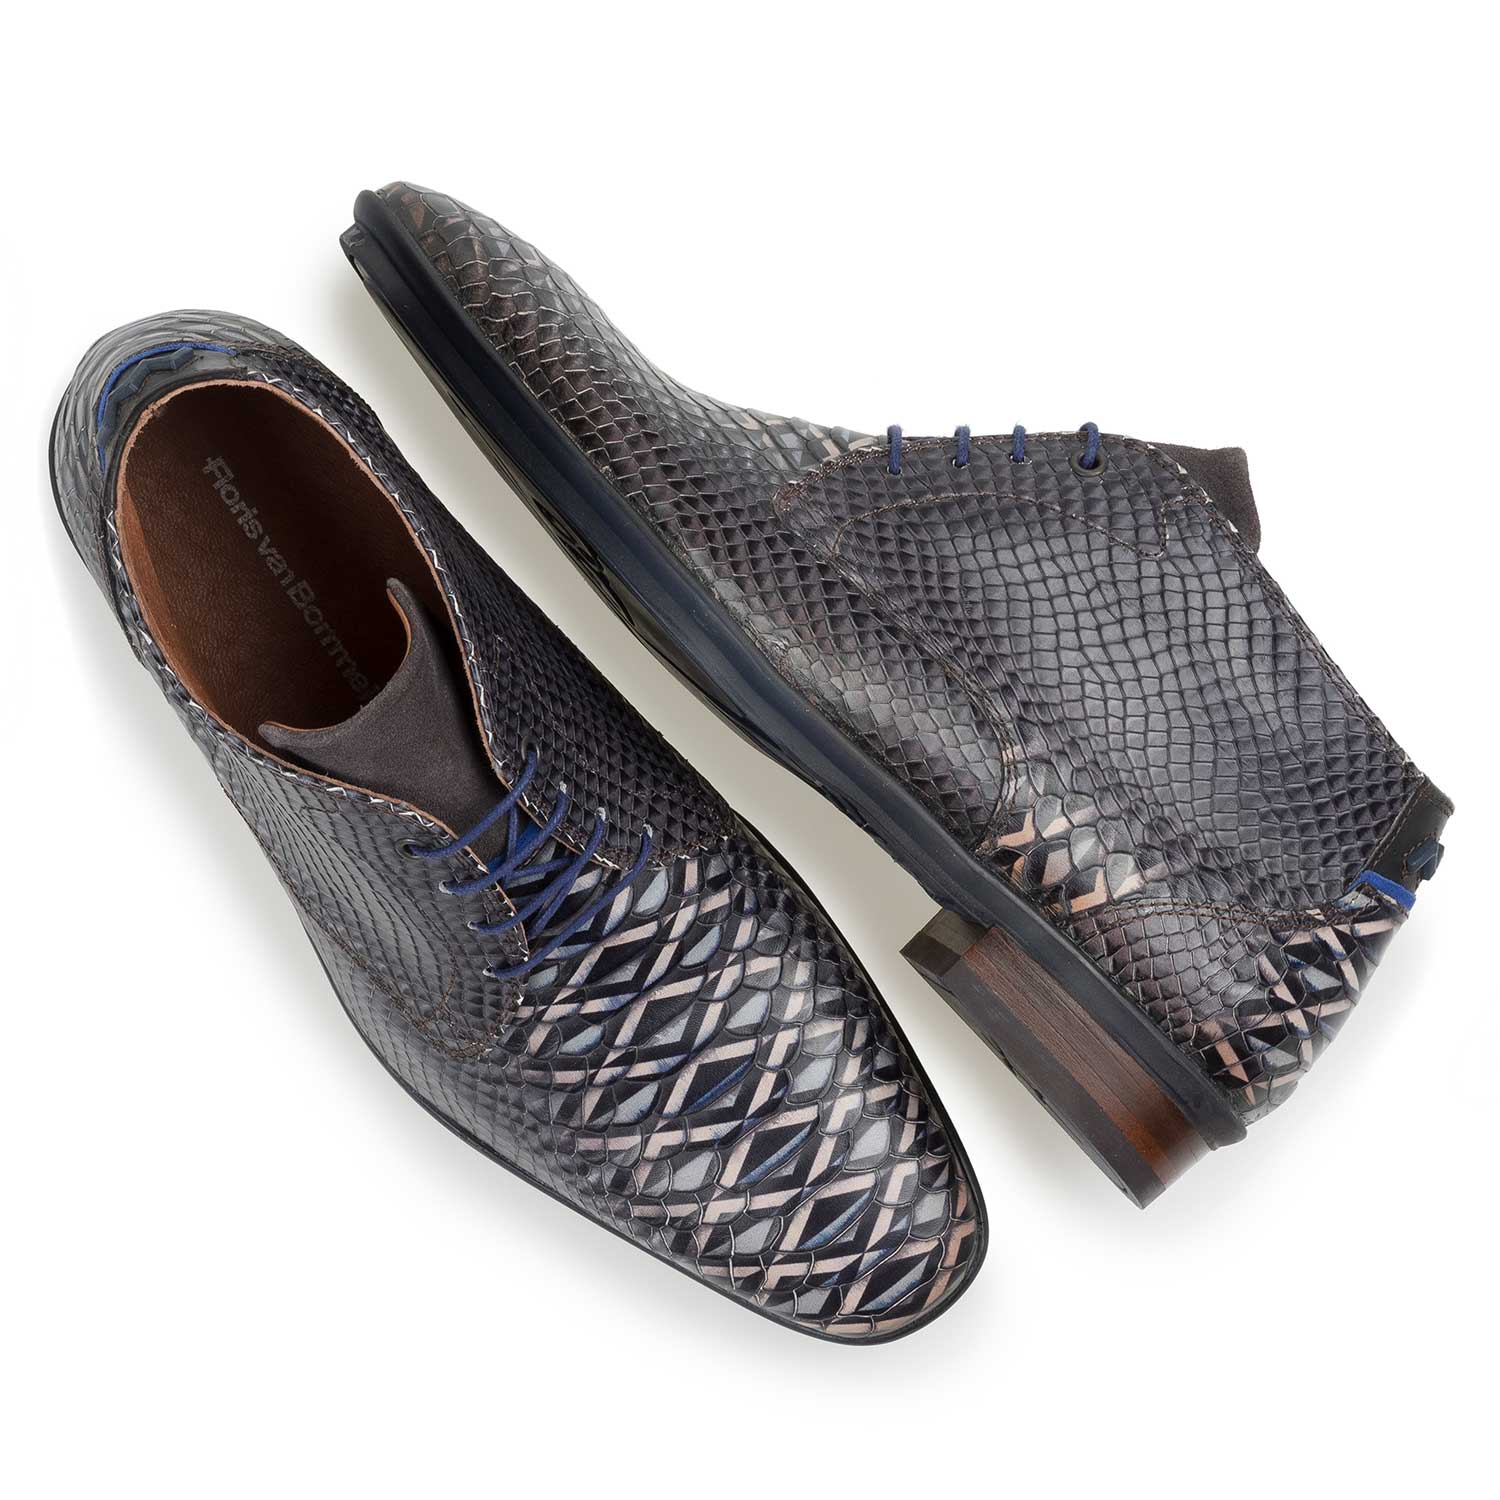 10475/04 - Dark grey calf leather lace shoe with snake print